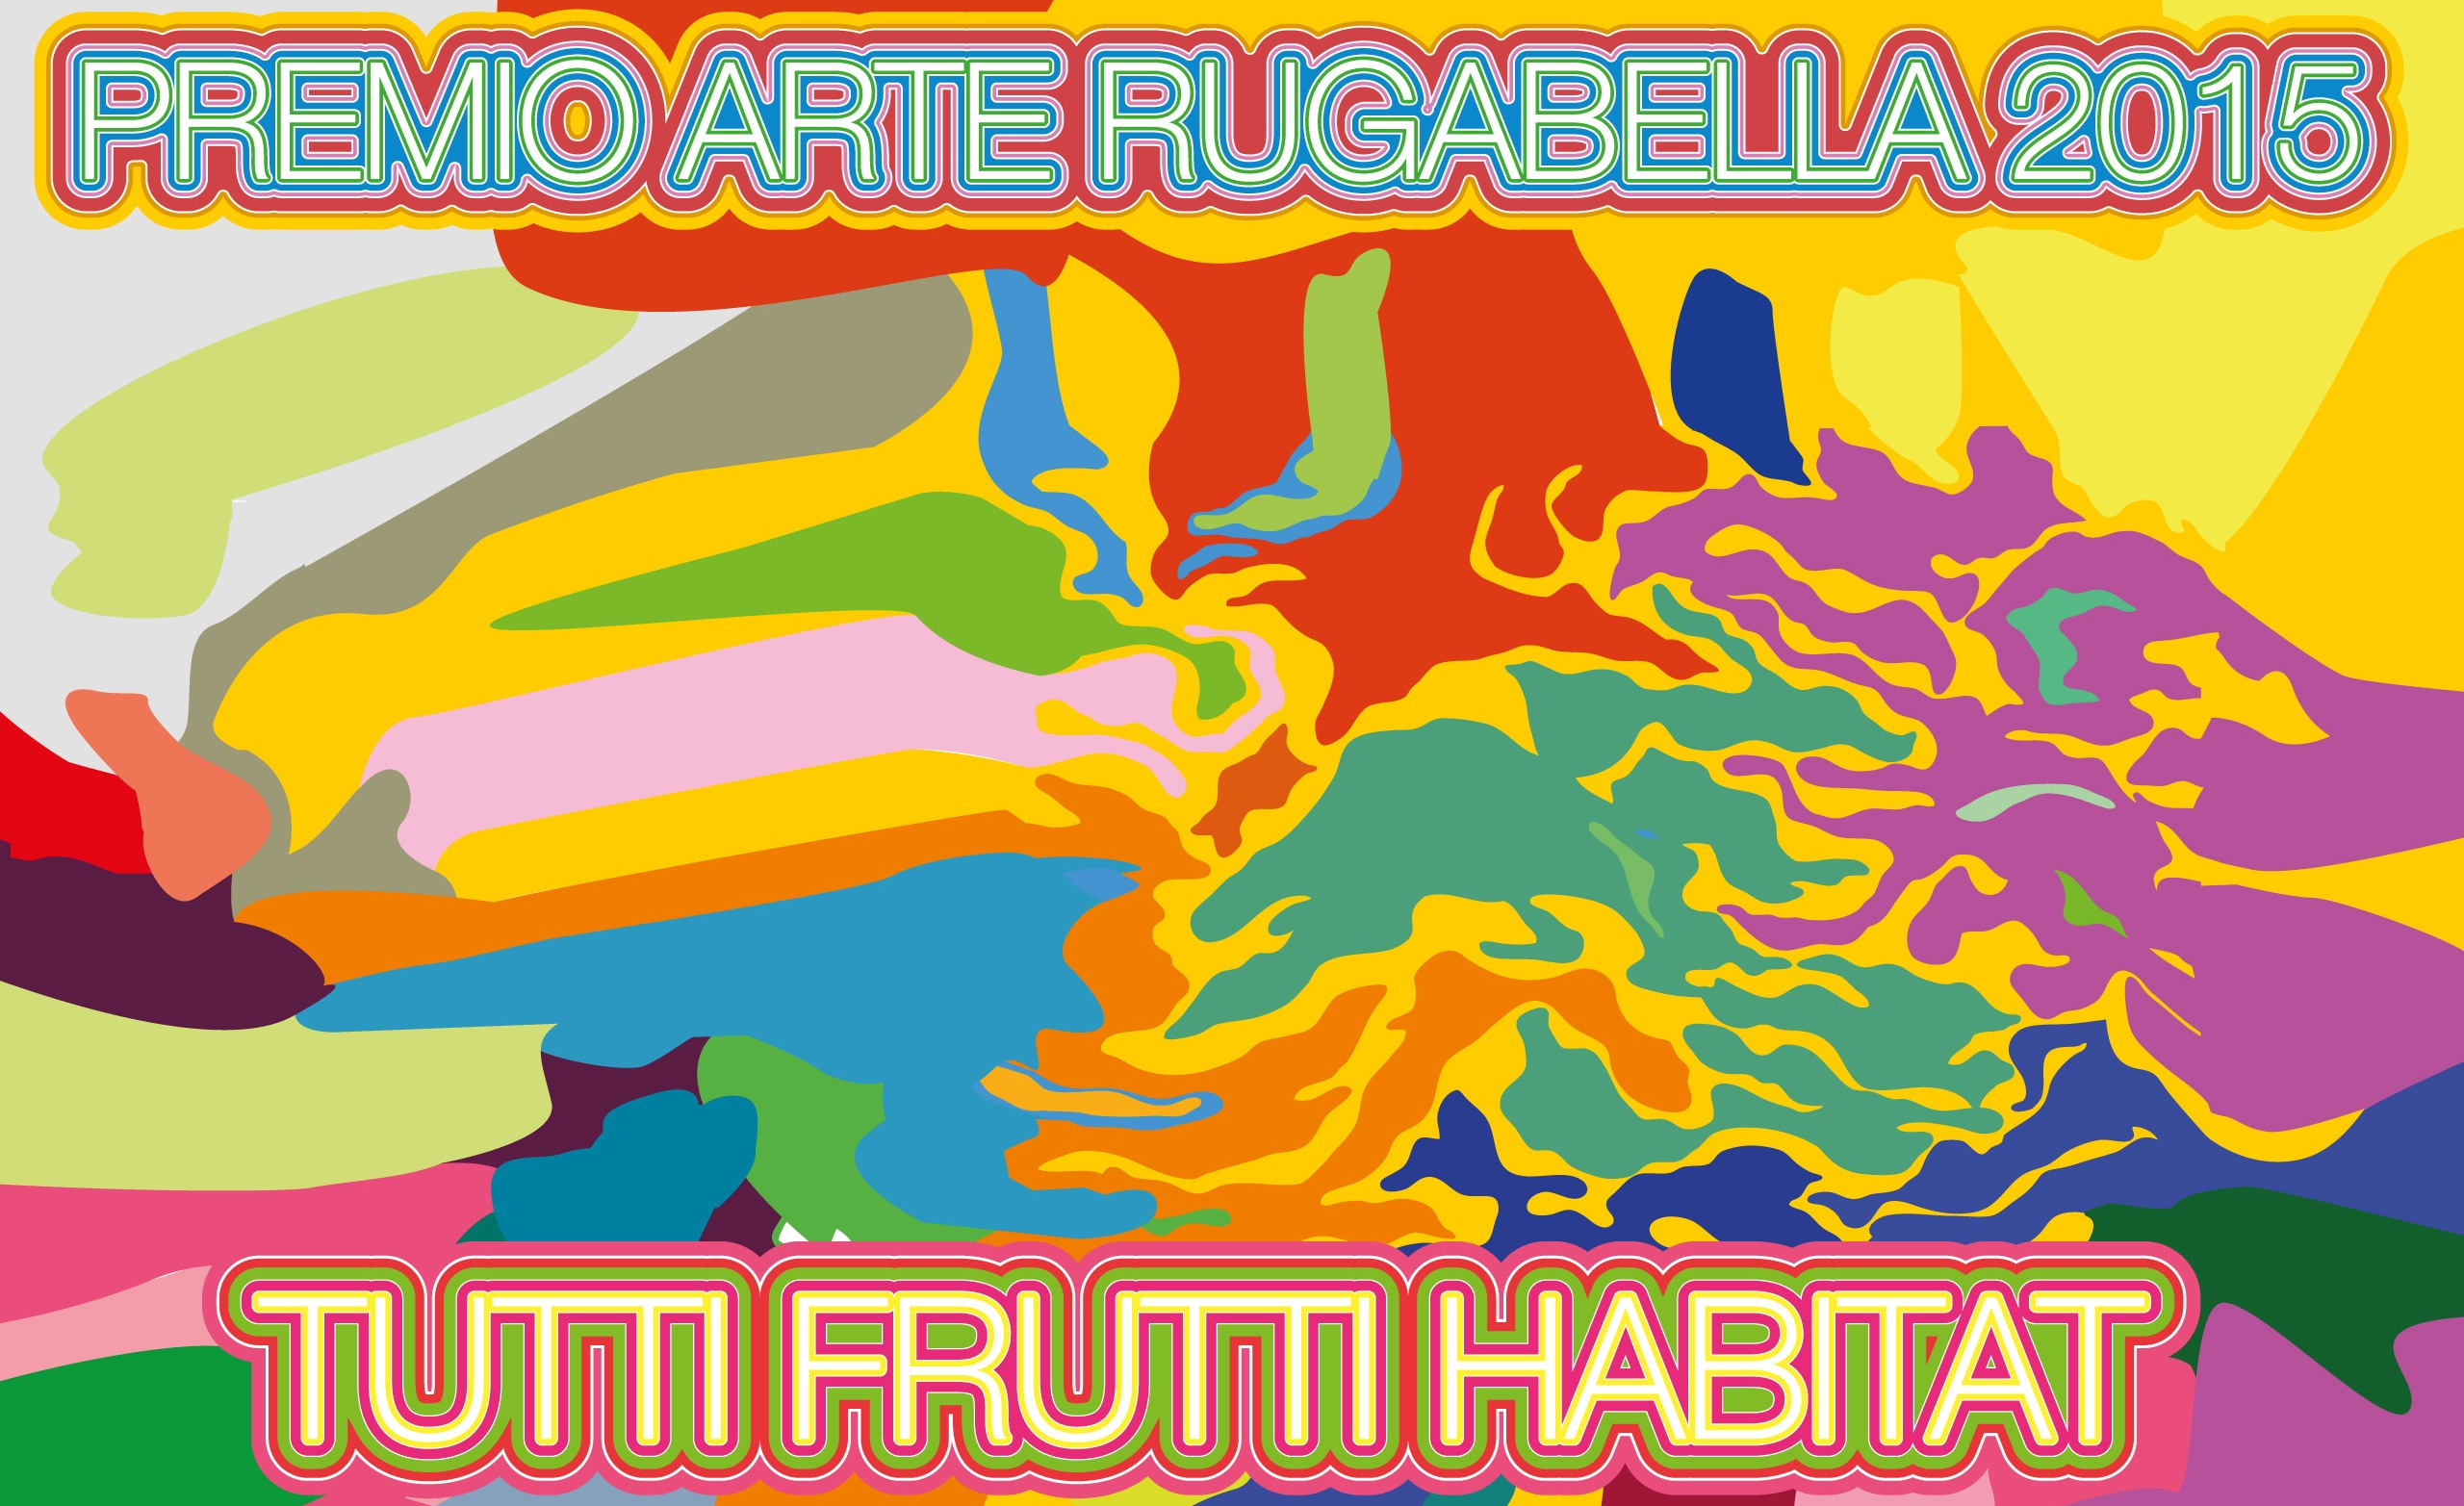 RUGABELLA FLYER - Copia (3)